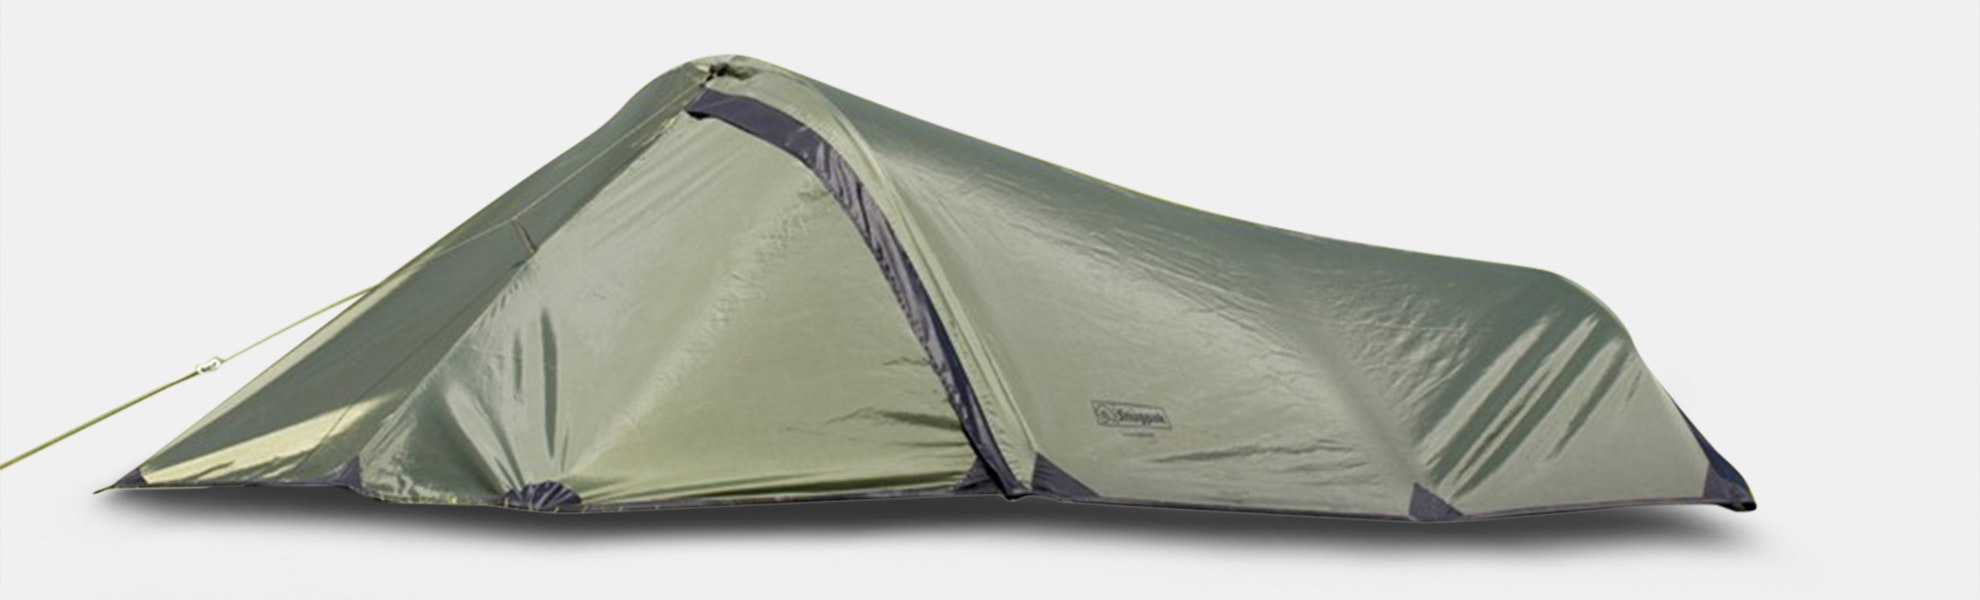 Snugpak Ionosphere 1-Person Tent